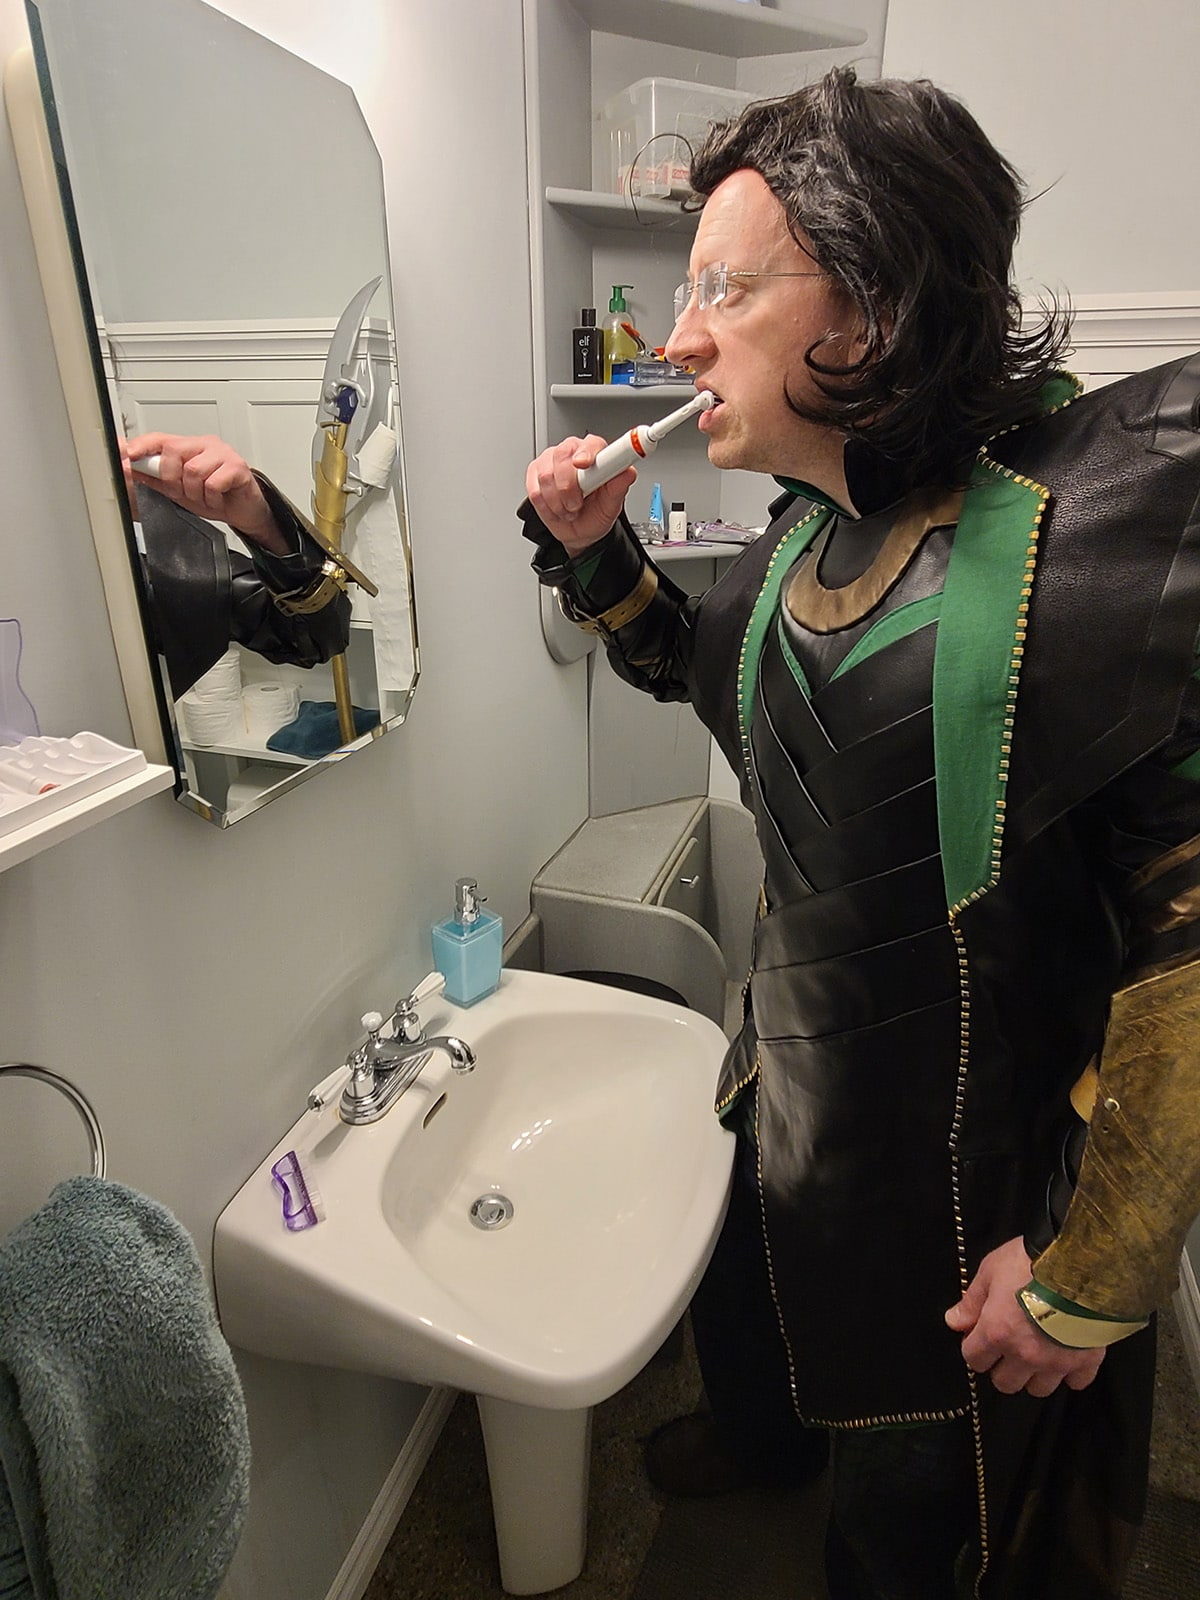 Loki brushing his teeth with the water off.